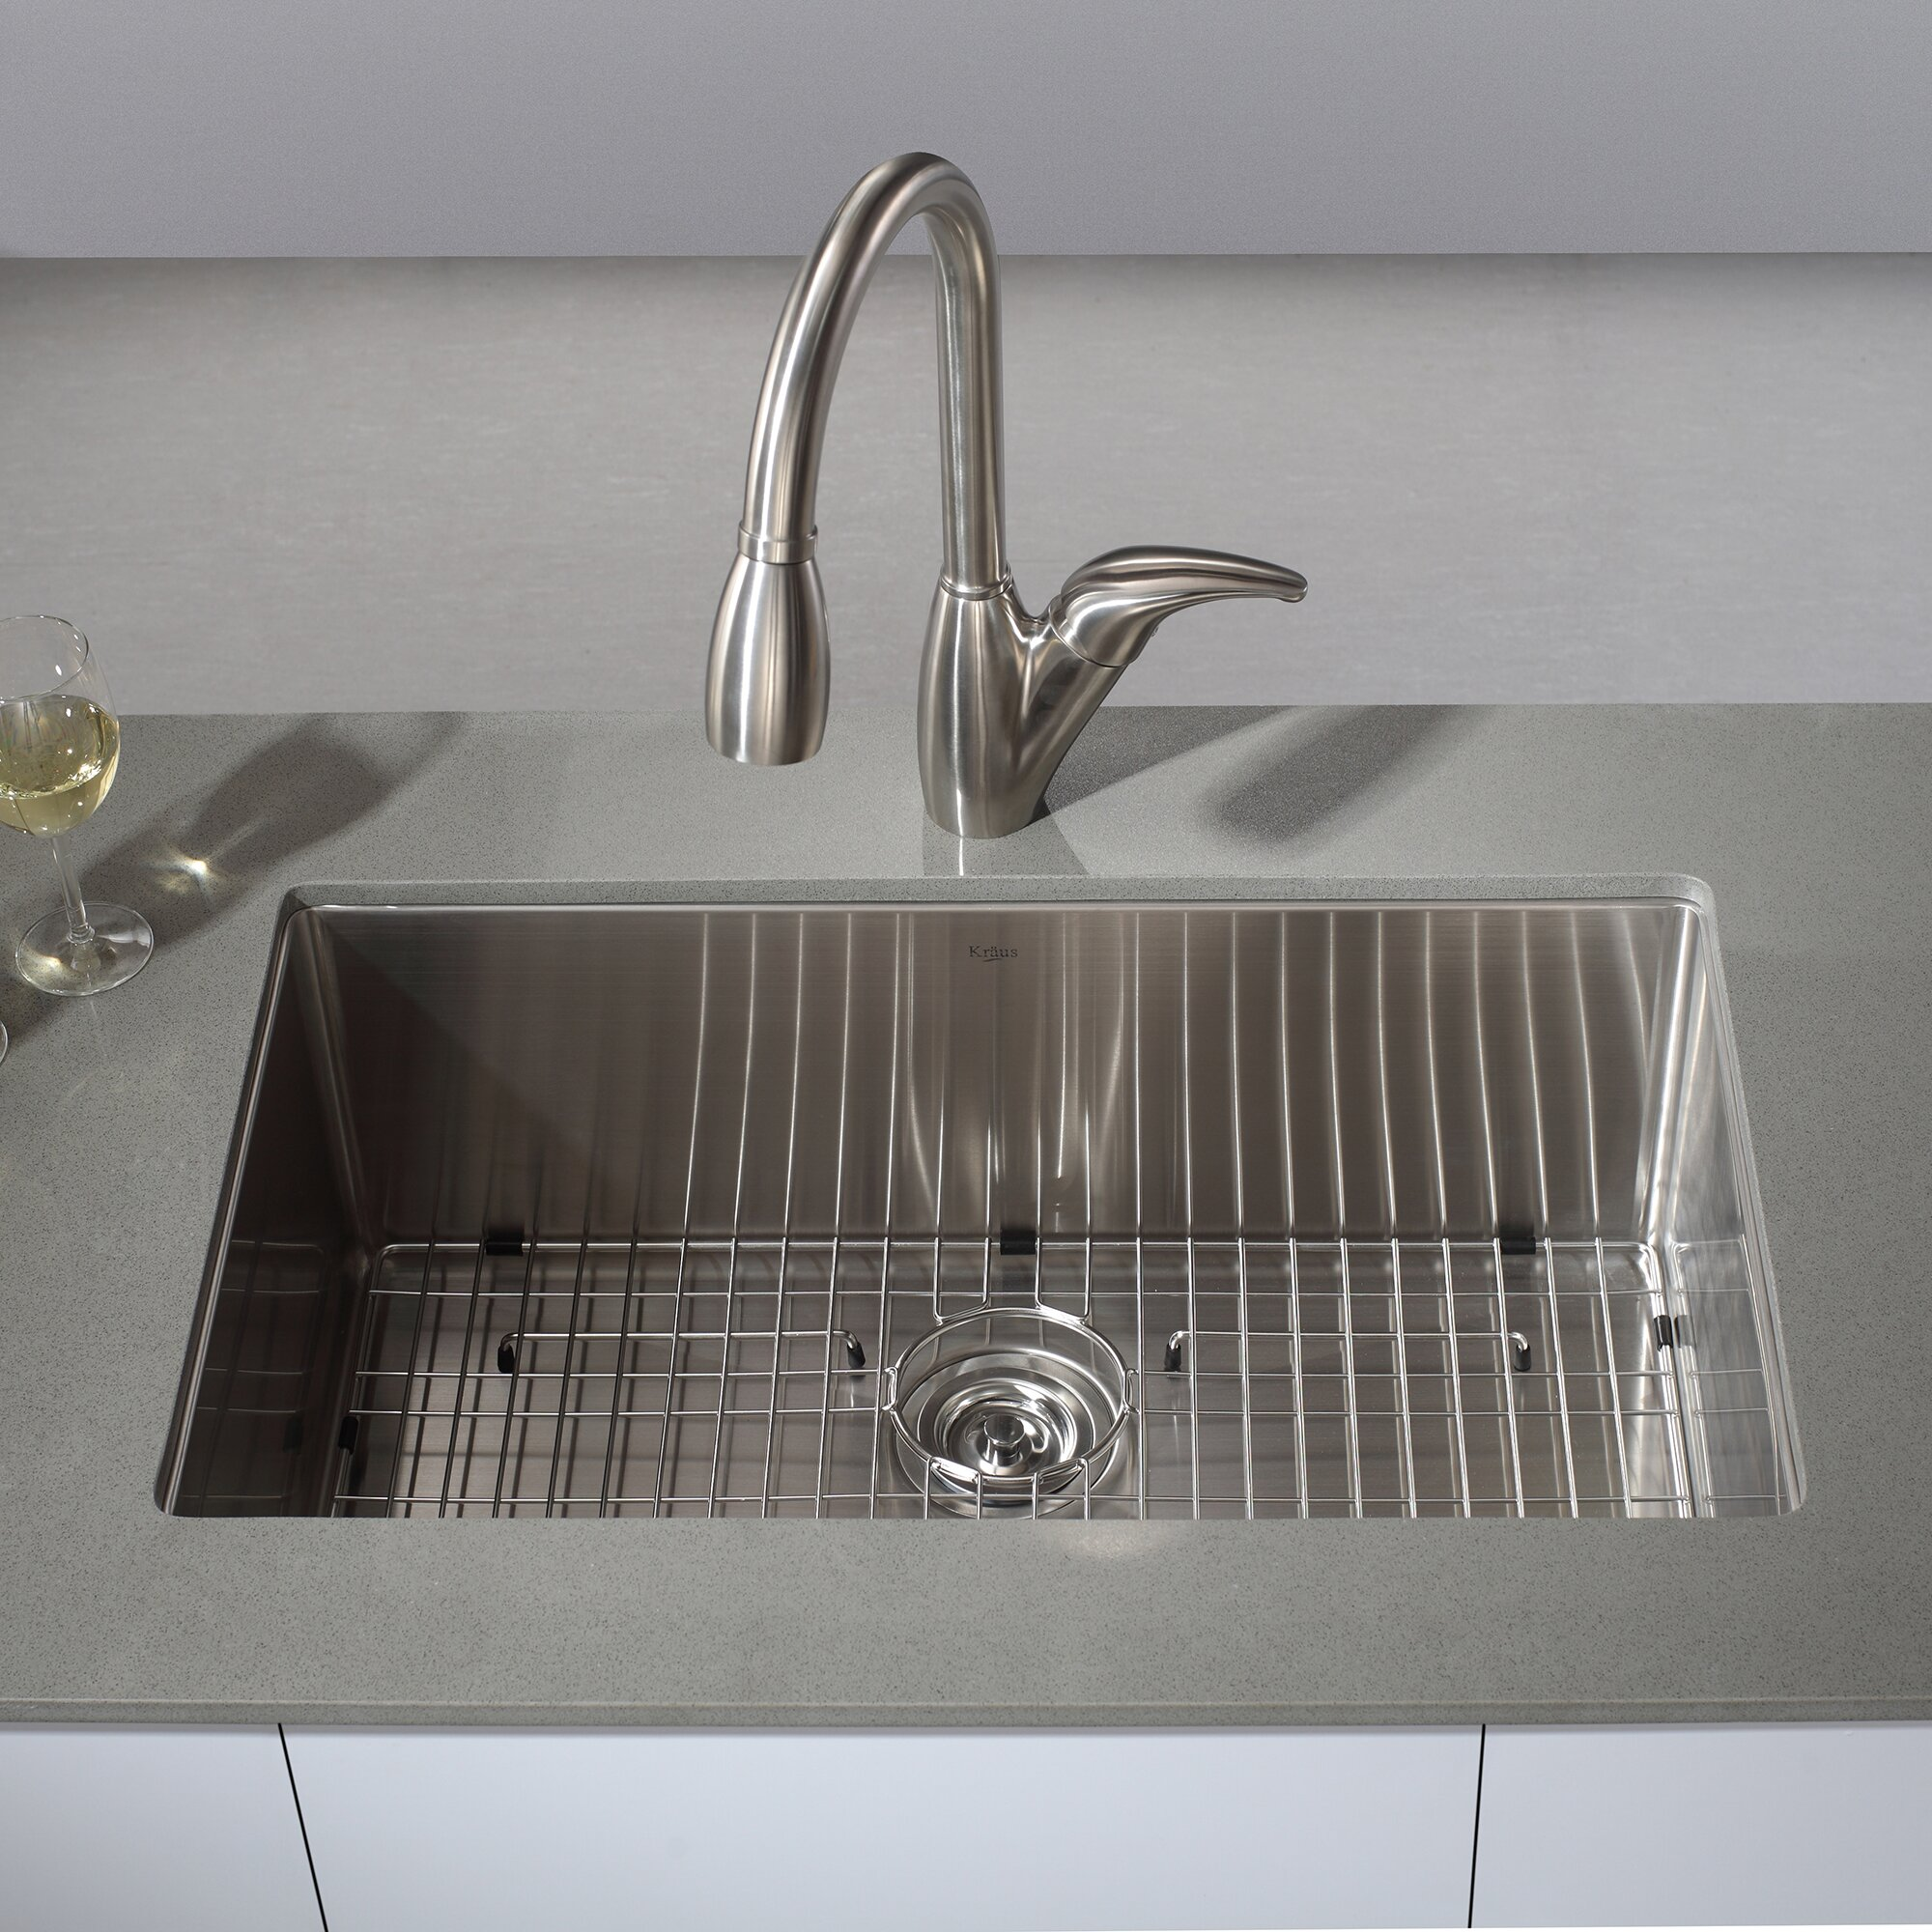 Kitchen Sink Kraus: Kraus Undermount Kitchen Sink & Reviews